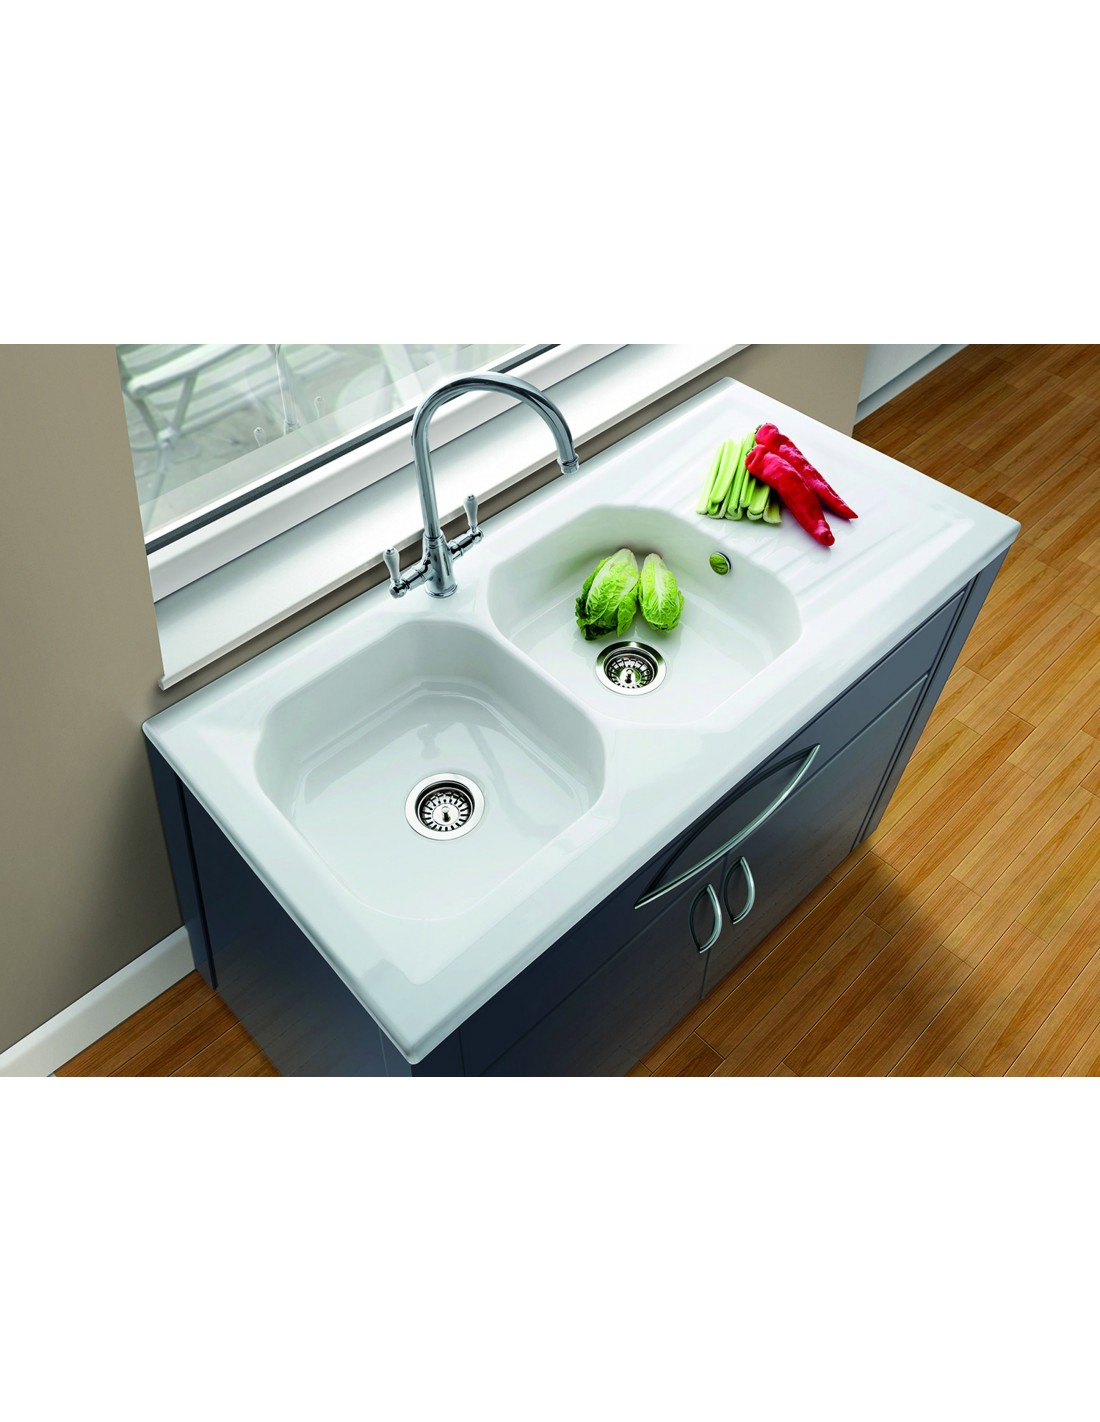 EV6738 Villeroy & Boch Provence Ceramic Sinks, Sit On